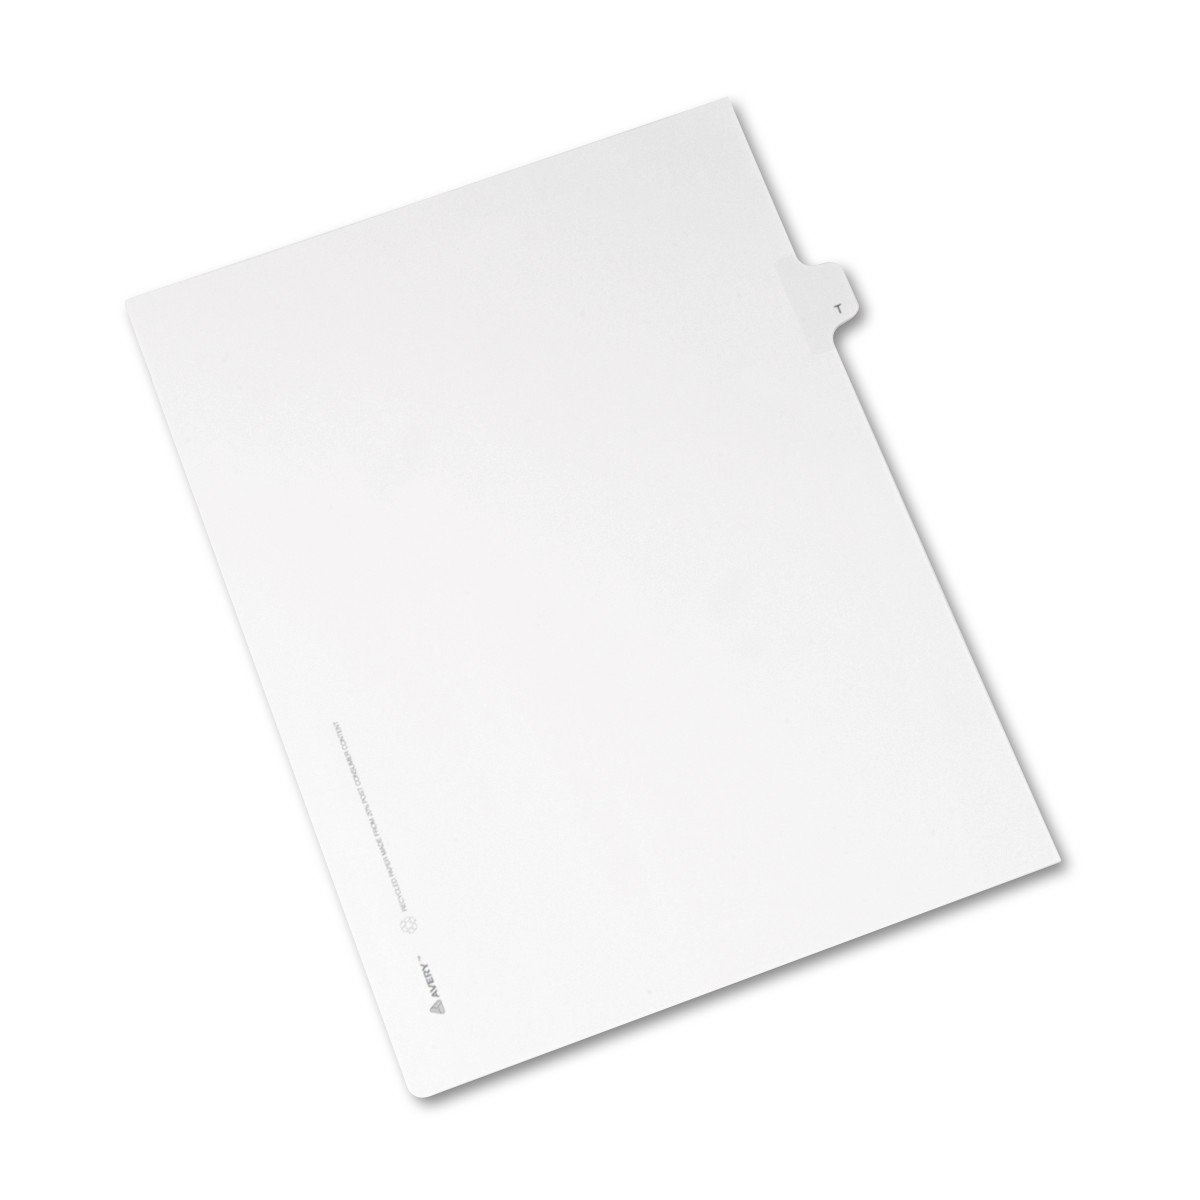 8.5 x 11 inches Avery Individual Legal Exhibit Dividers Allstate Style Pack of 25 82182 Side Tab T